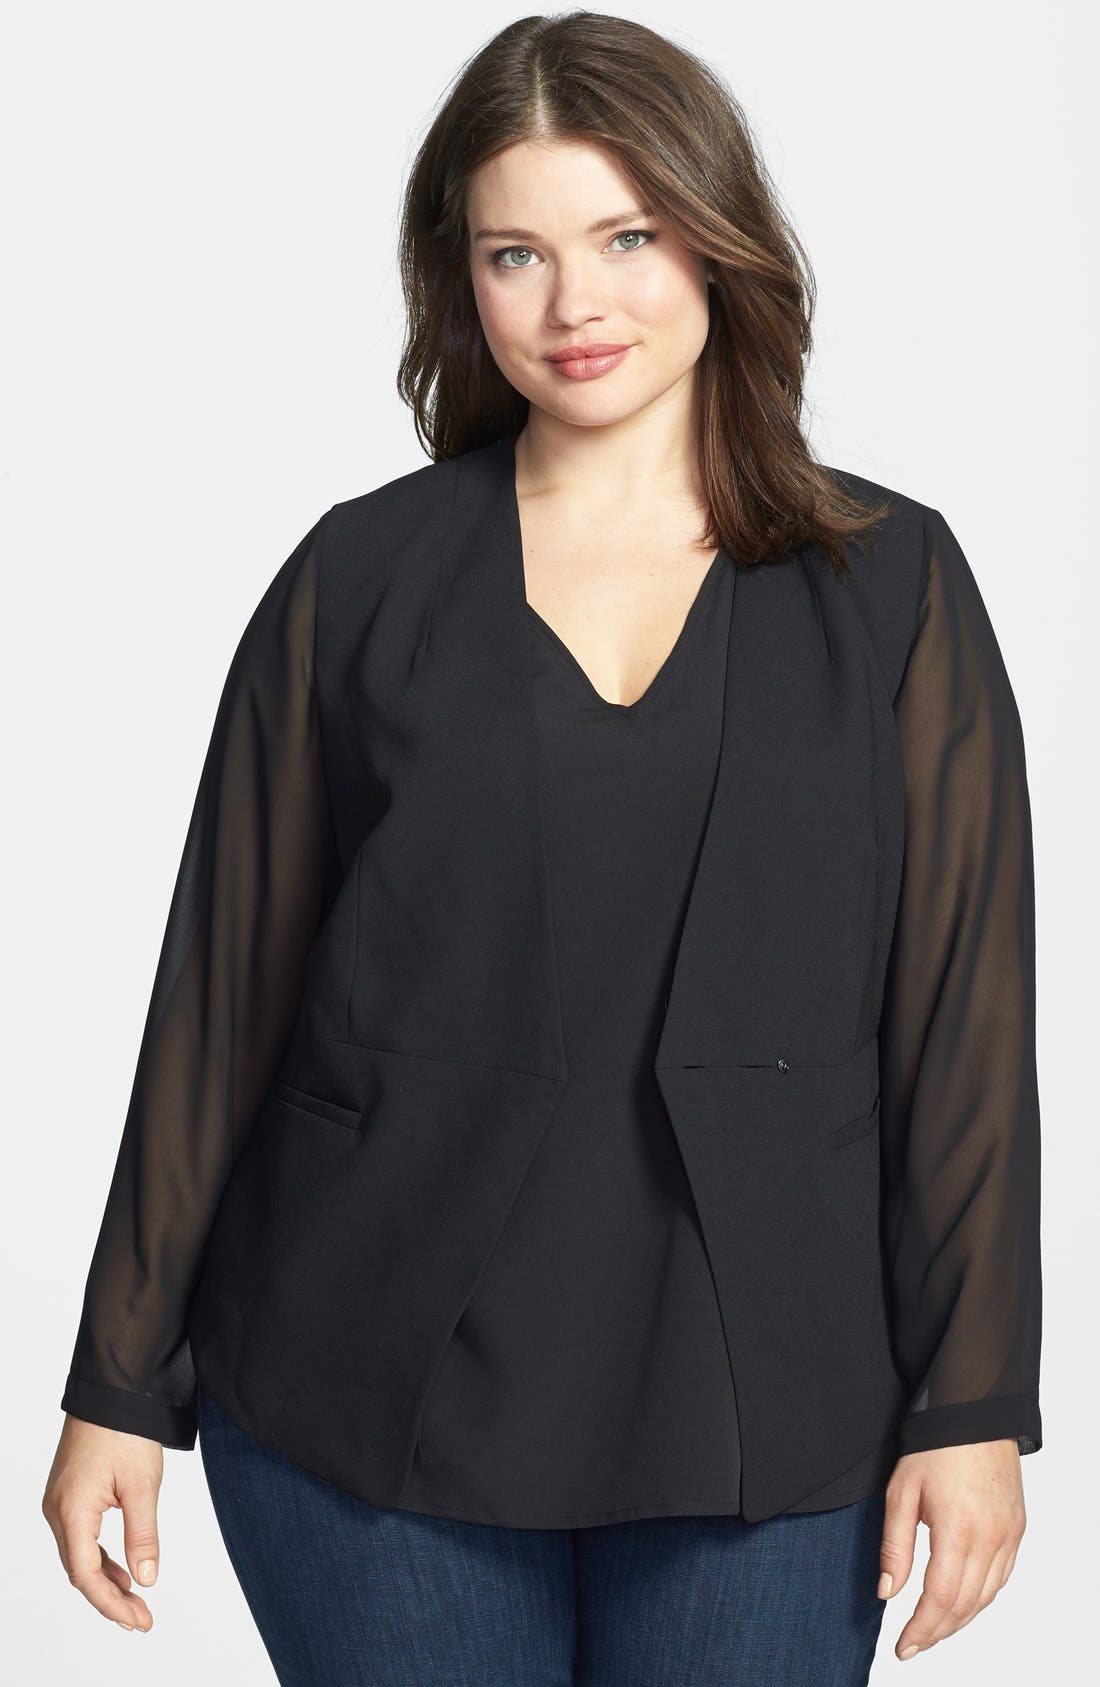 Alternate Image 1 Selected - Vince Camuto Angled Front Jacket (Plus Size)